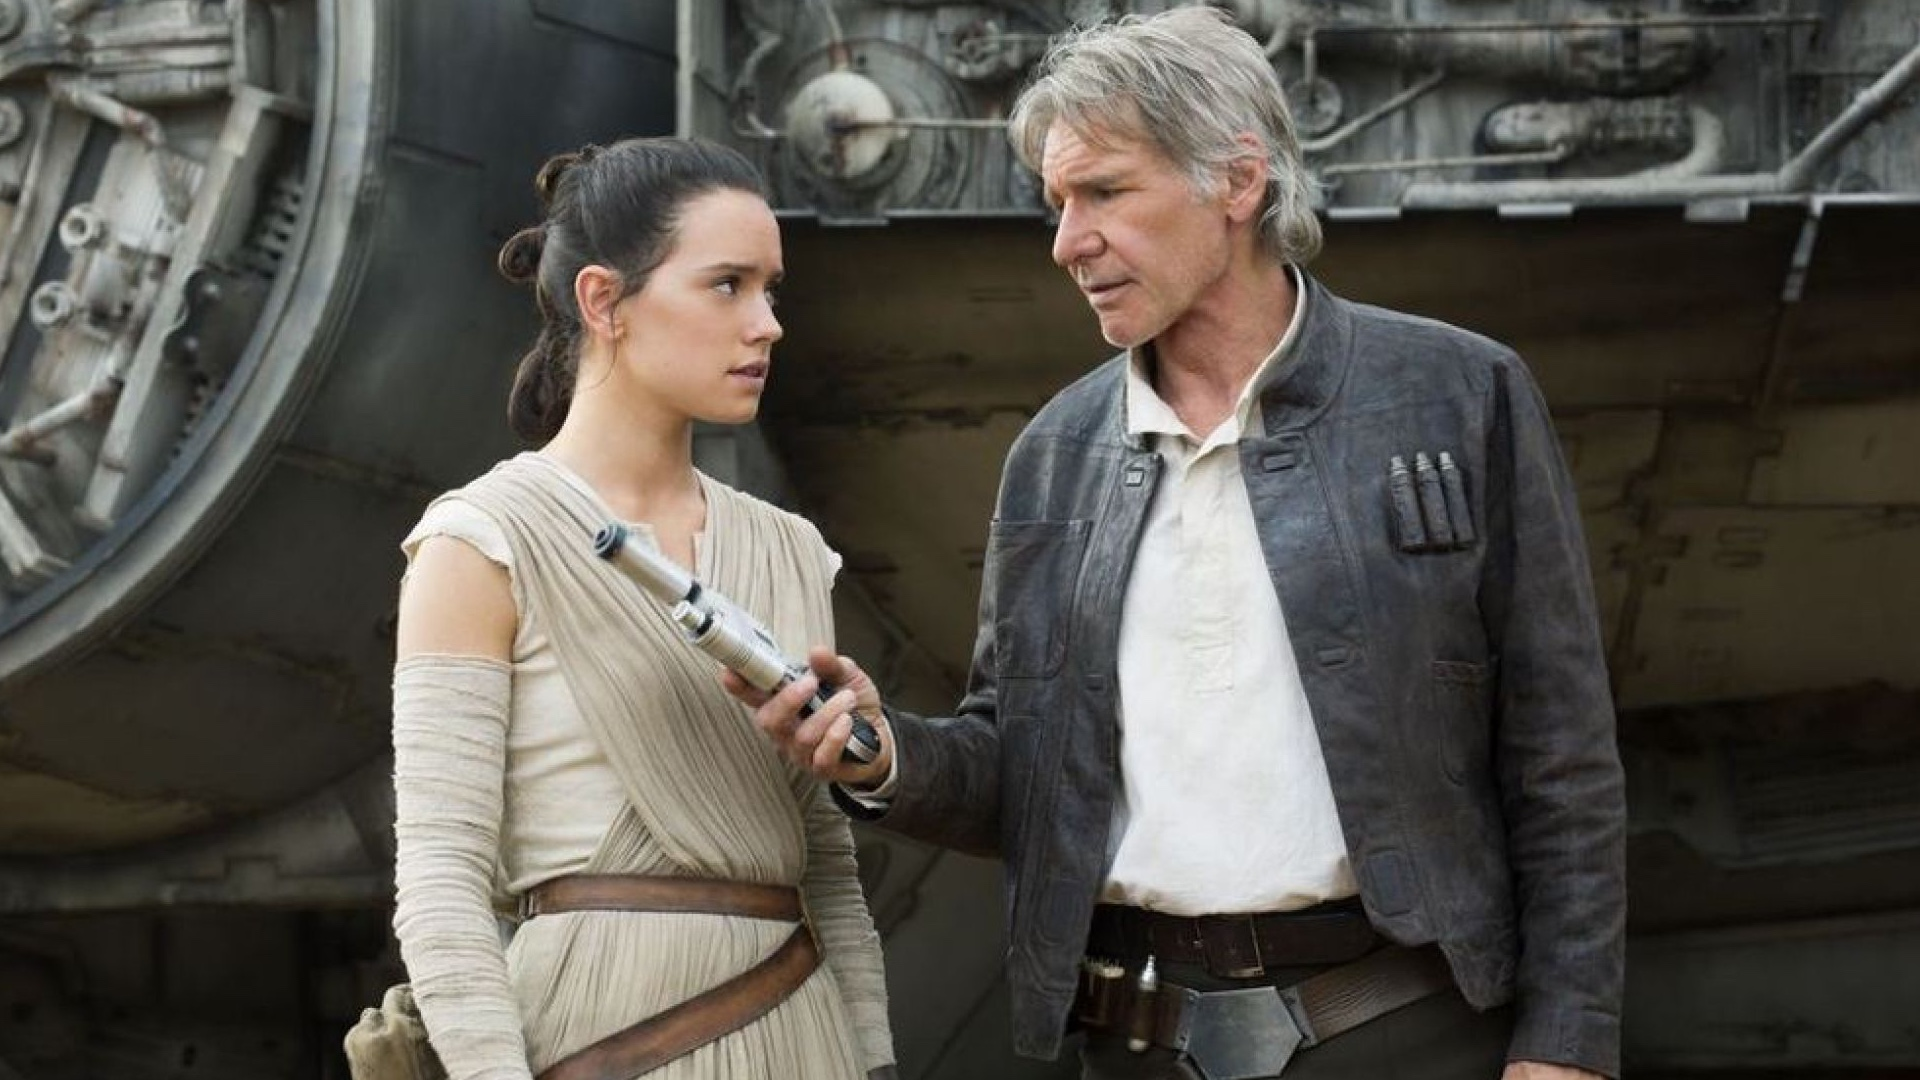 the-star-wars-and-marvel-films-will-be-leaving-netflix-for-disneys-new-streaming-service-social.jpg